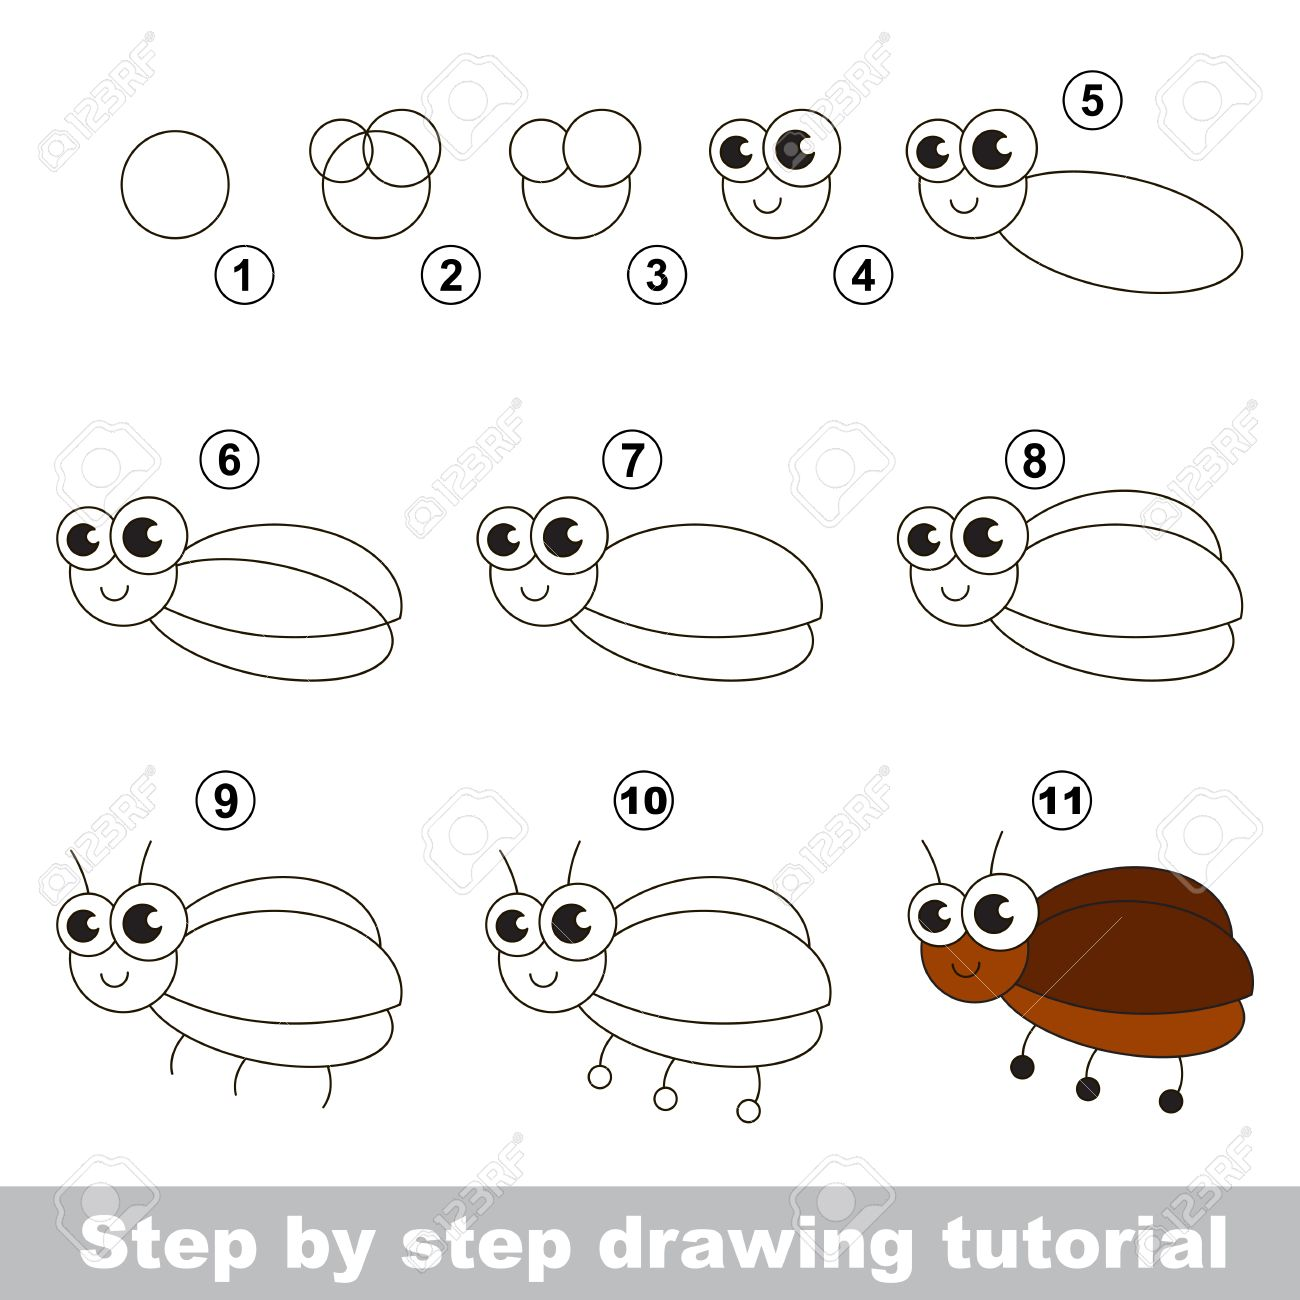 drawing tutorial for children easy educational kid game simple level of difficulty kid - Simple Drawing Pictures For Children